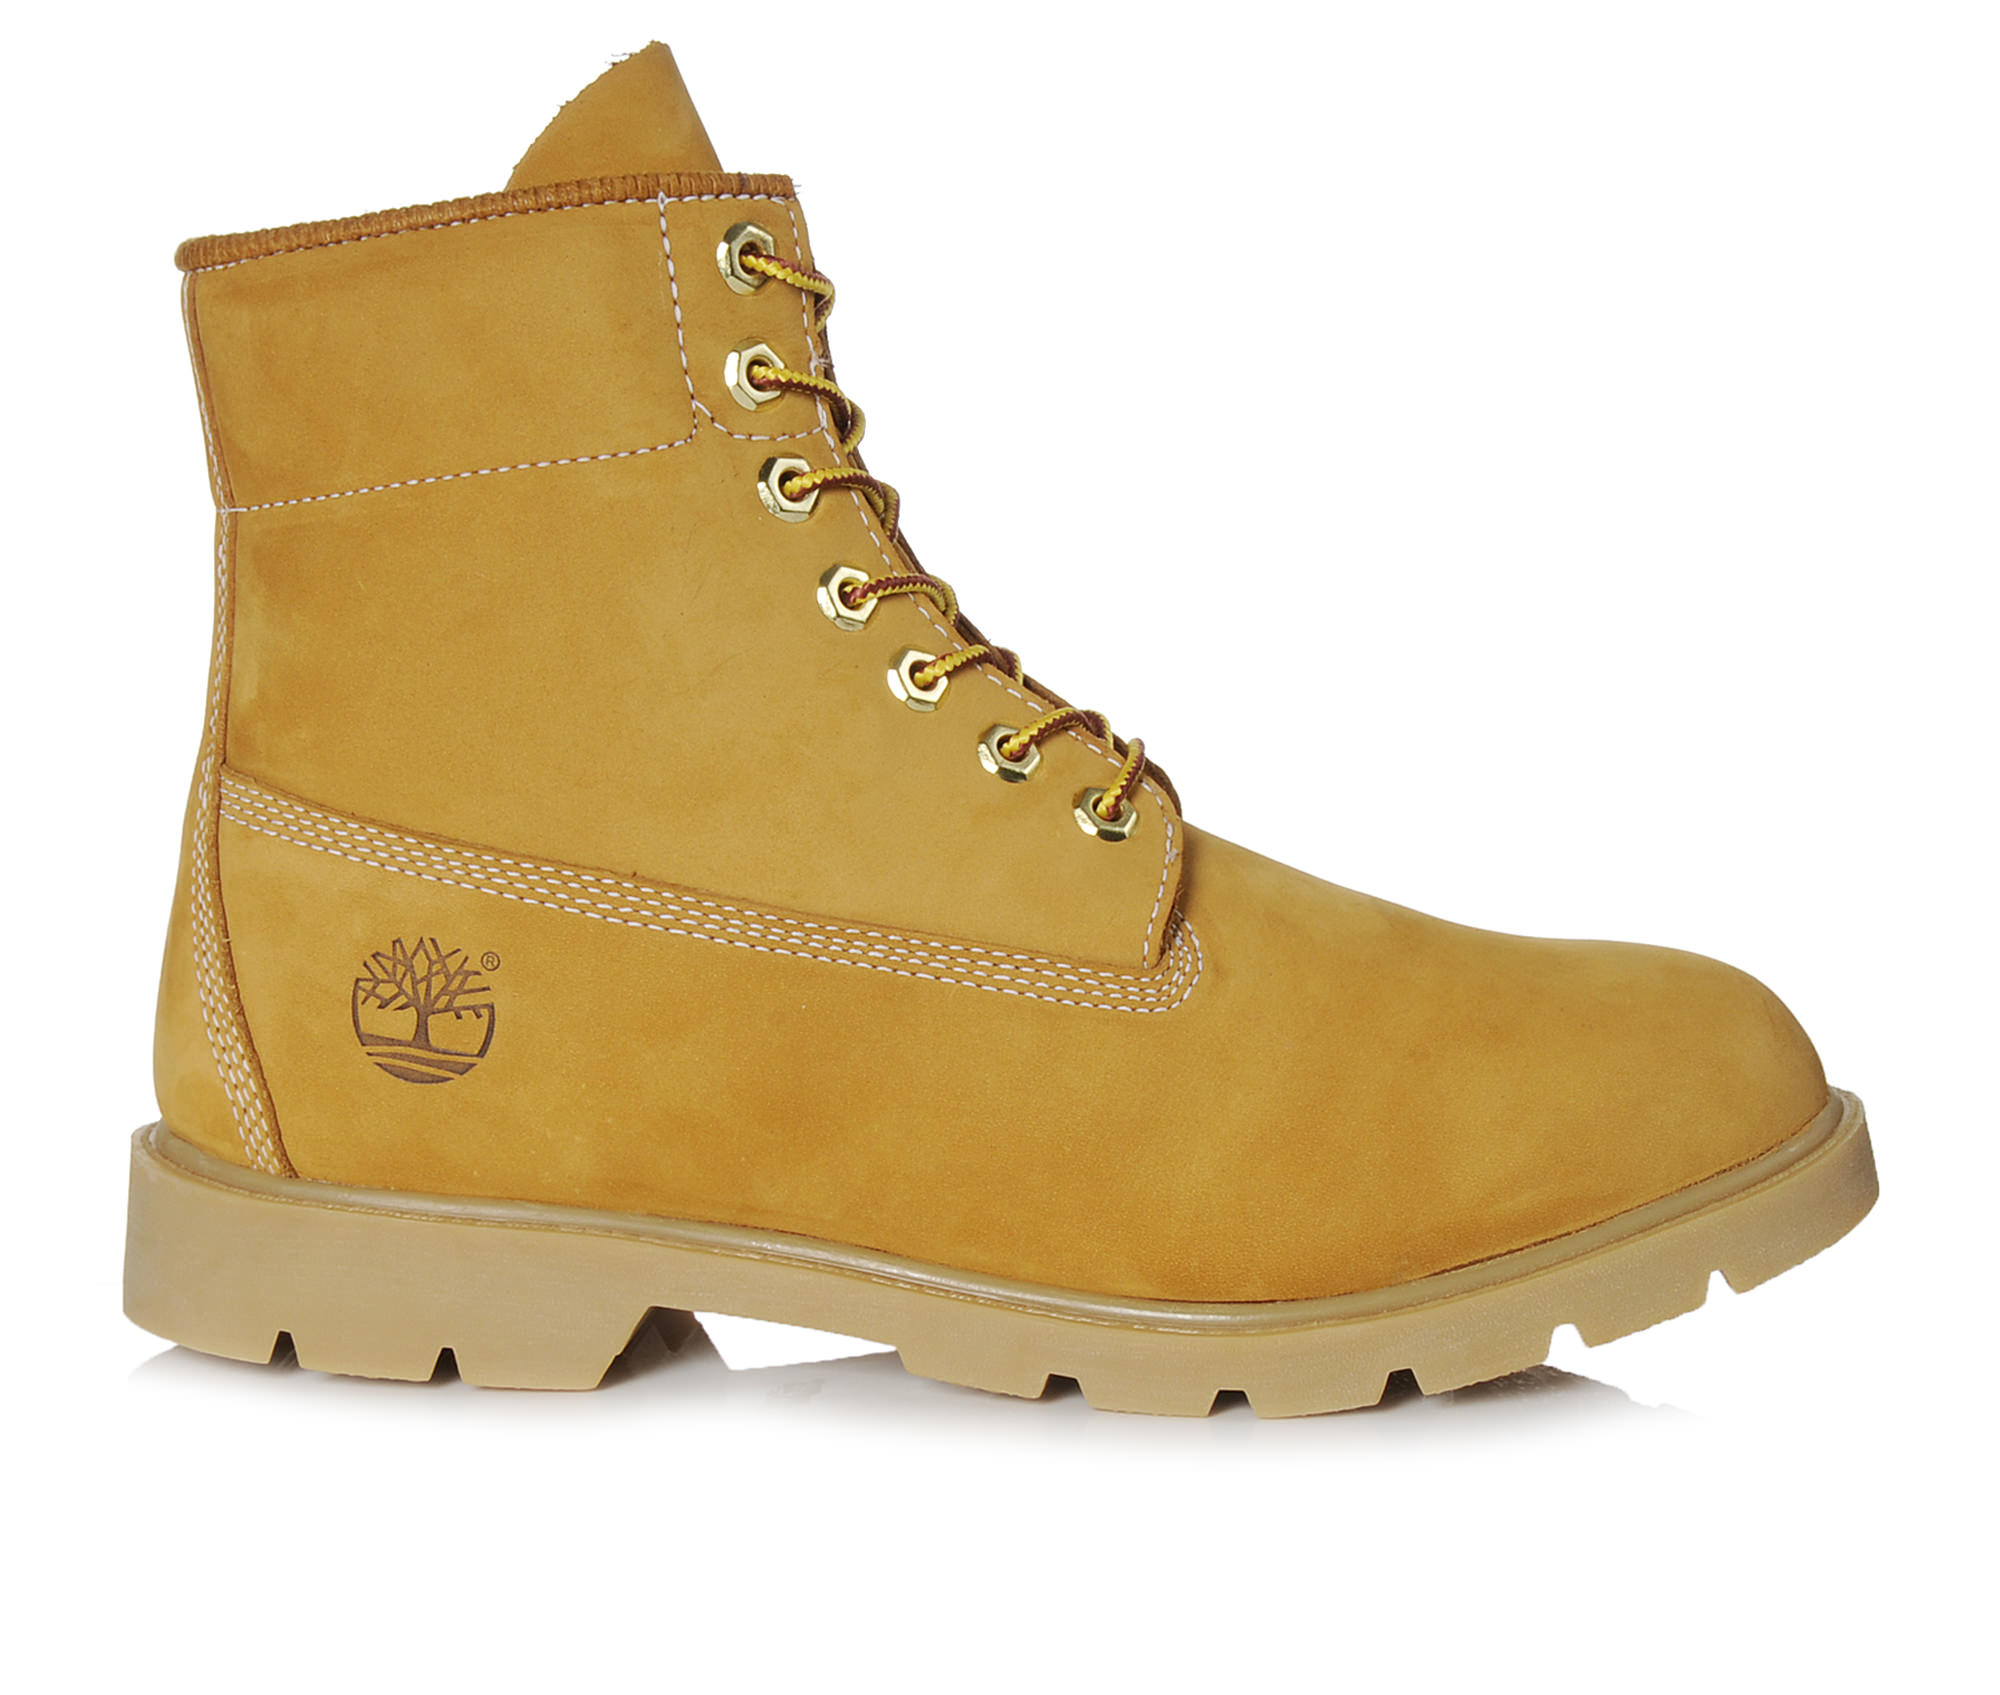 Timberland 6 Inch Basic Waterproof Men's Boots (Beige Leather)